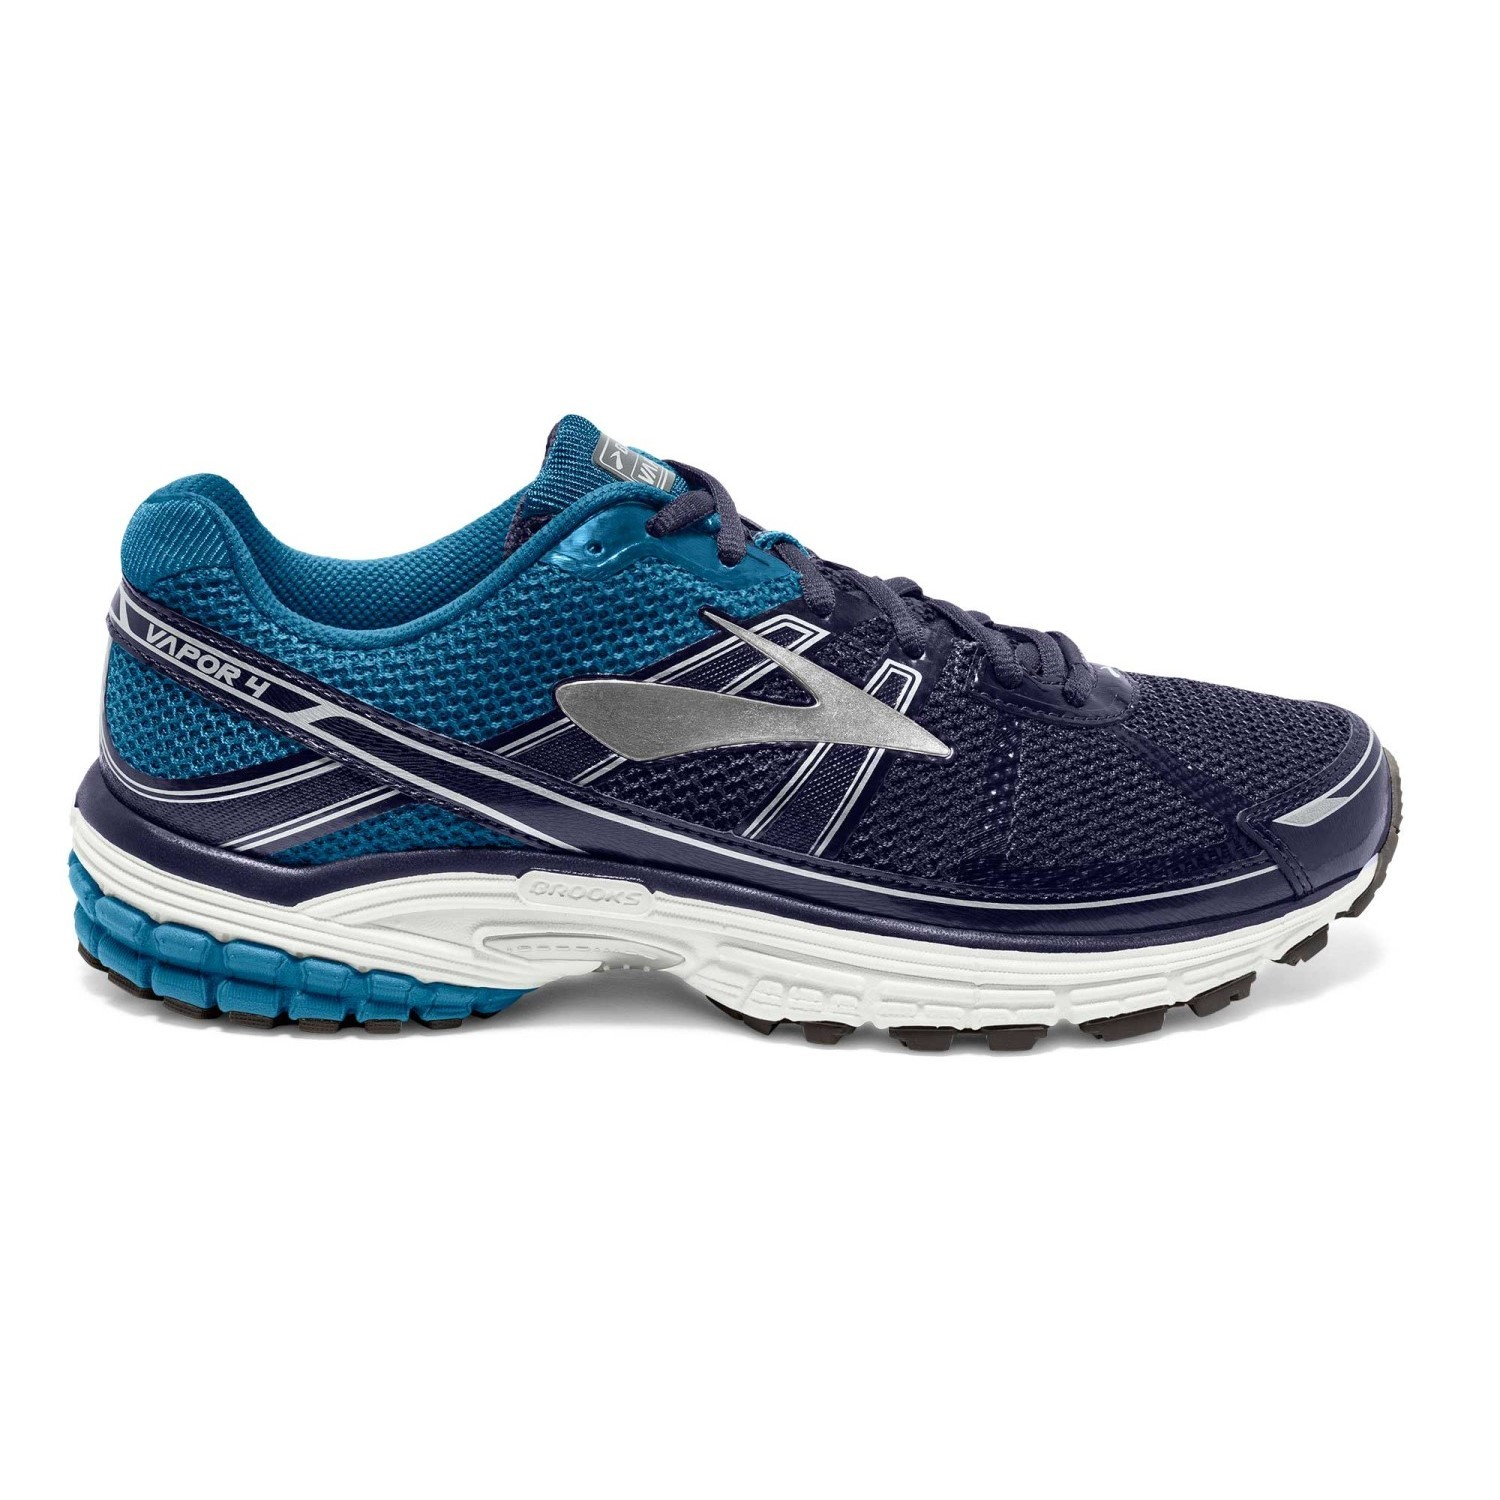 Brooks Vapor 4 - Mens Running Shoes - Black/Evening Blue